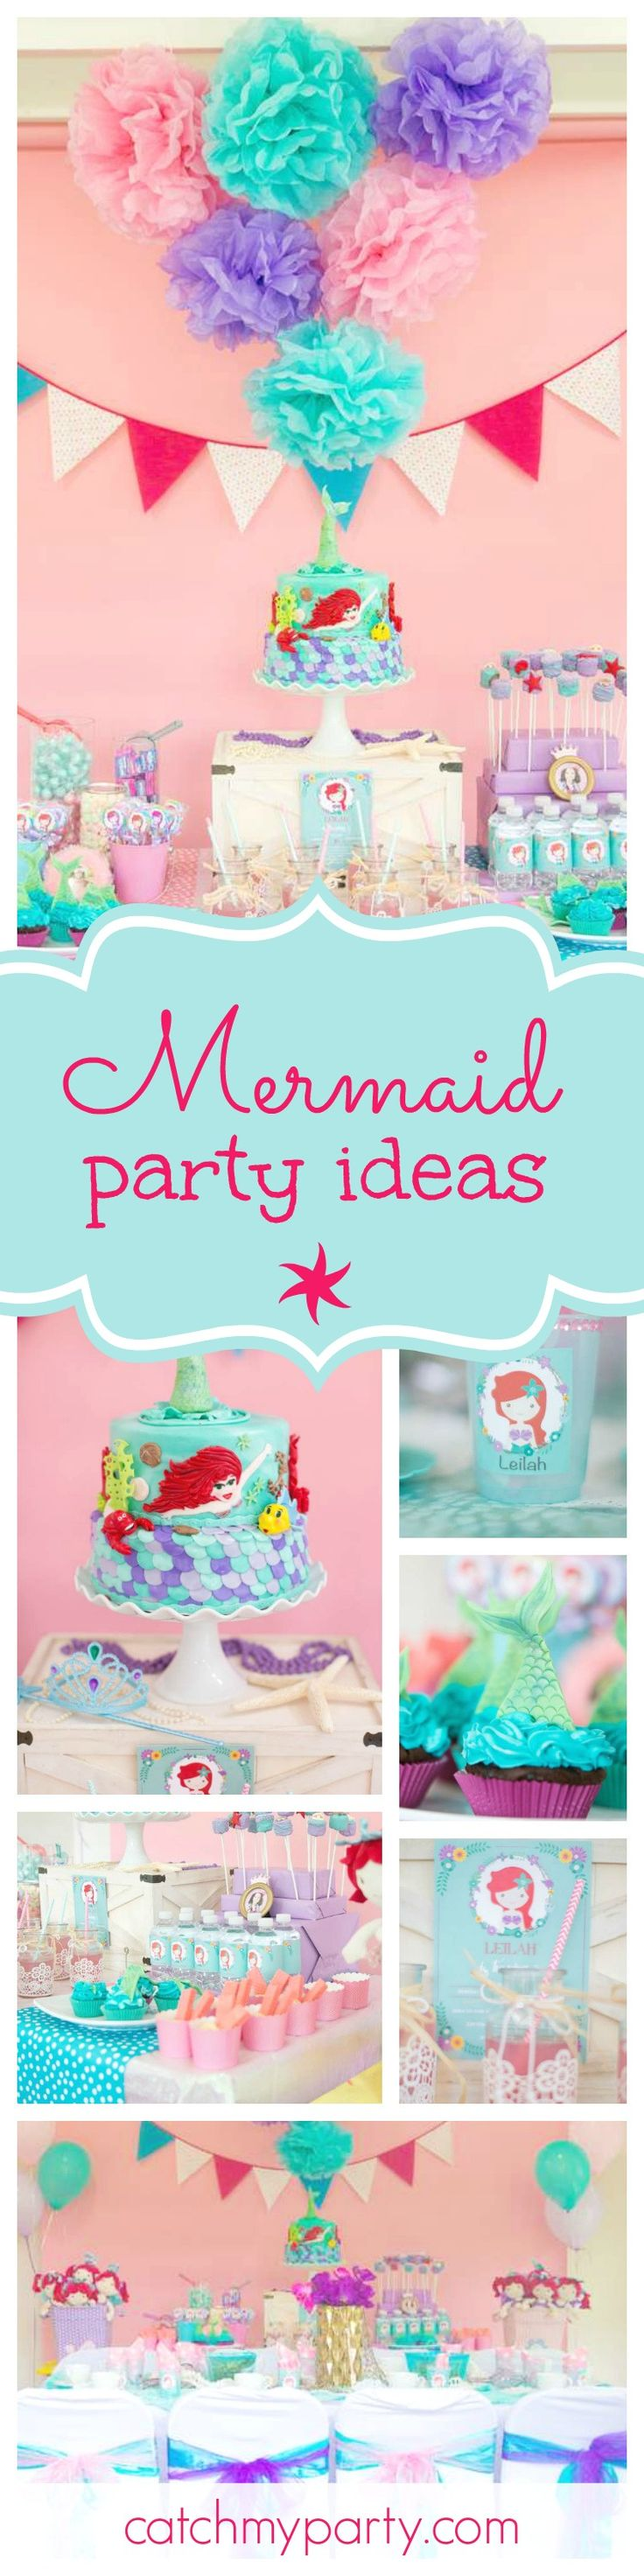 Check out this fantastic Little Mermaid birthday party. The gorgeous mermaid under the sea birthday cake is so impressive! See more party ideas and share yours at CatchMyParty.com